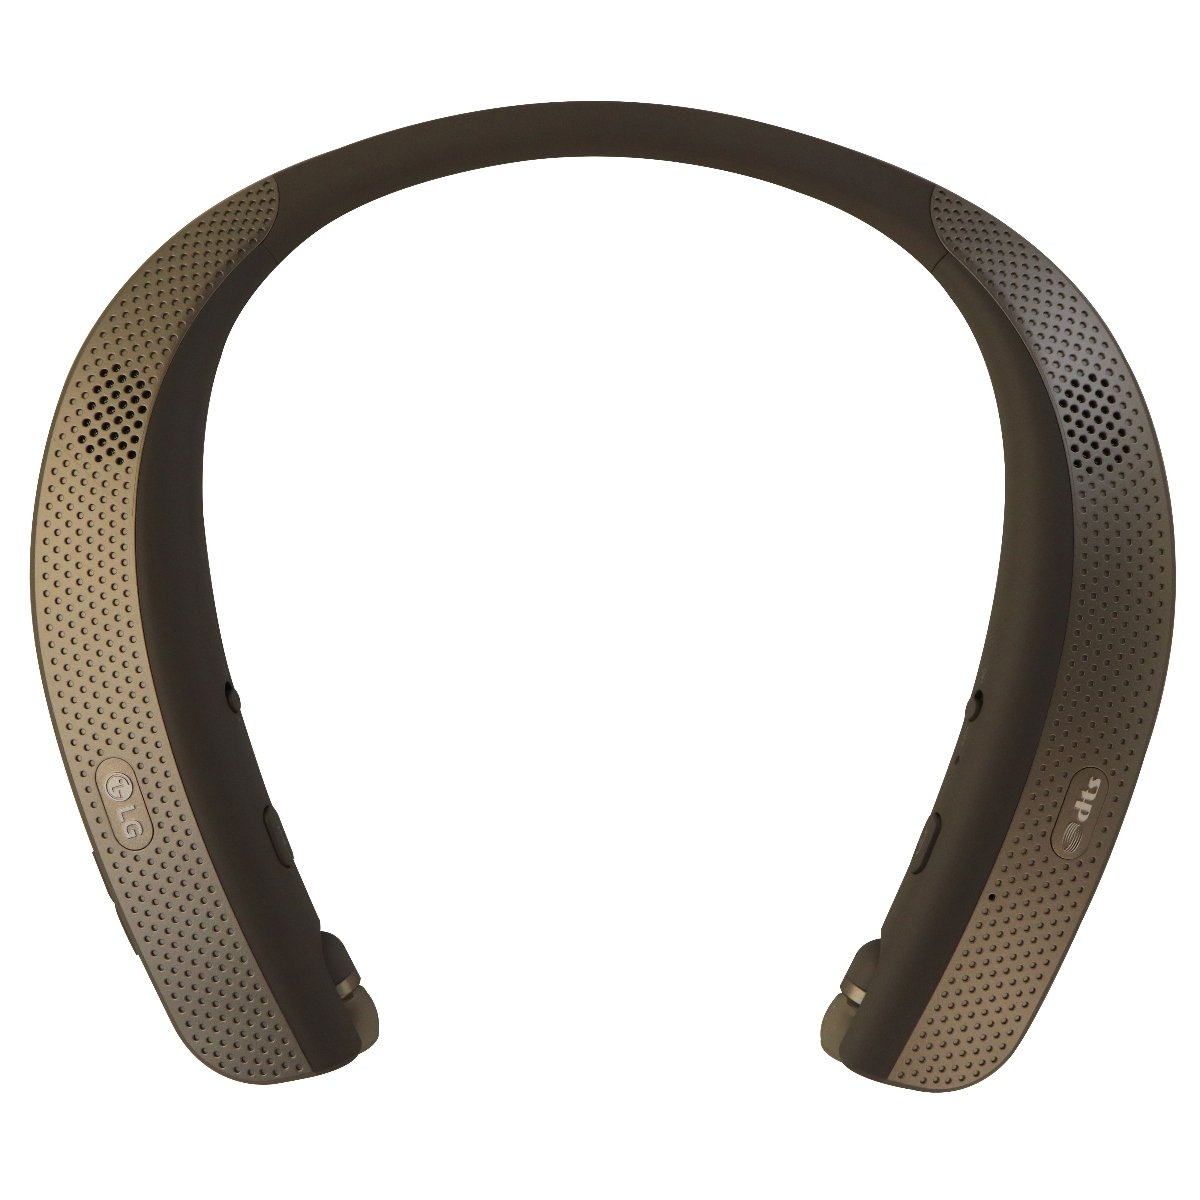 LG TONE Studio HBS-W120 - Wearable Personal Speaker - Titan Gray by LG